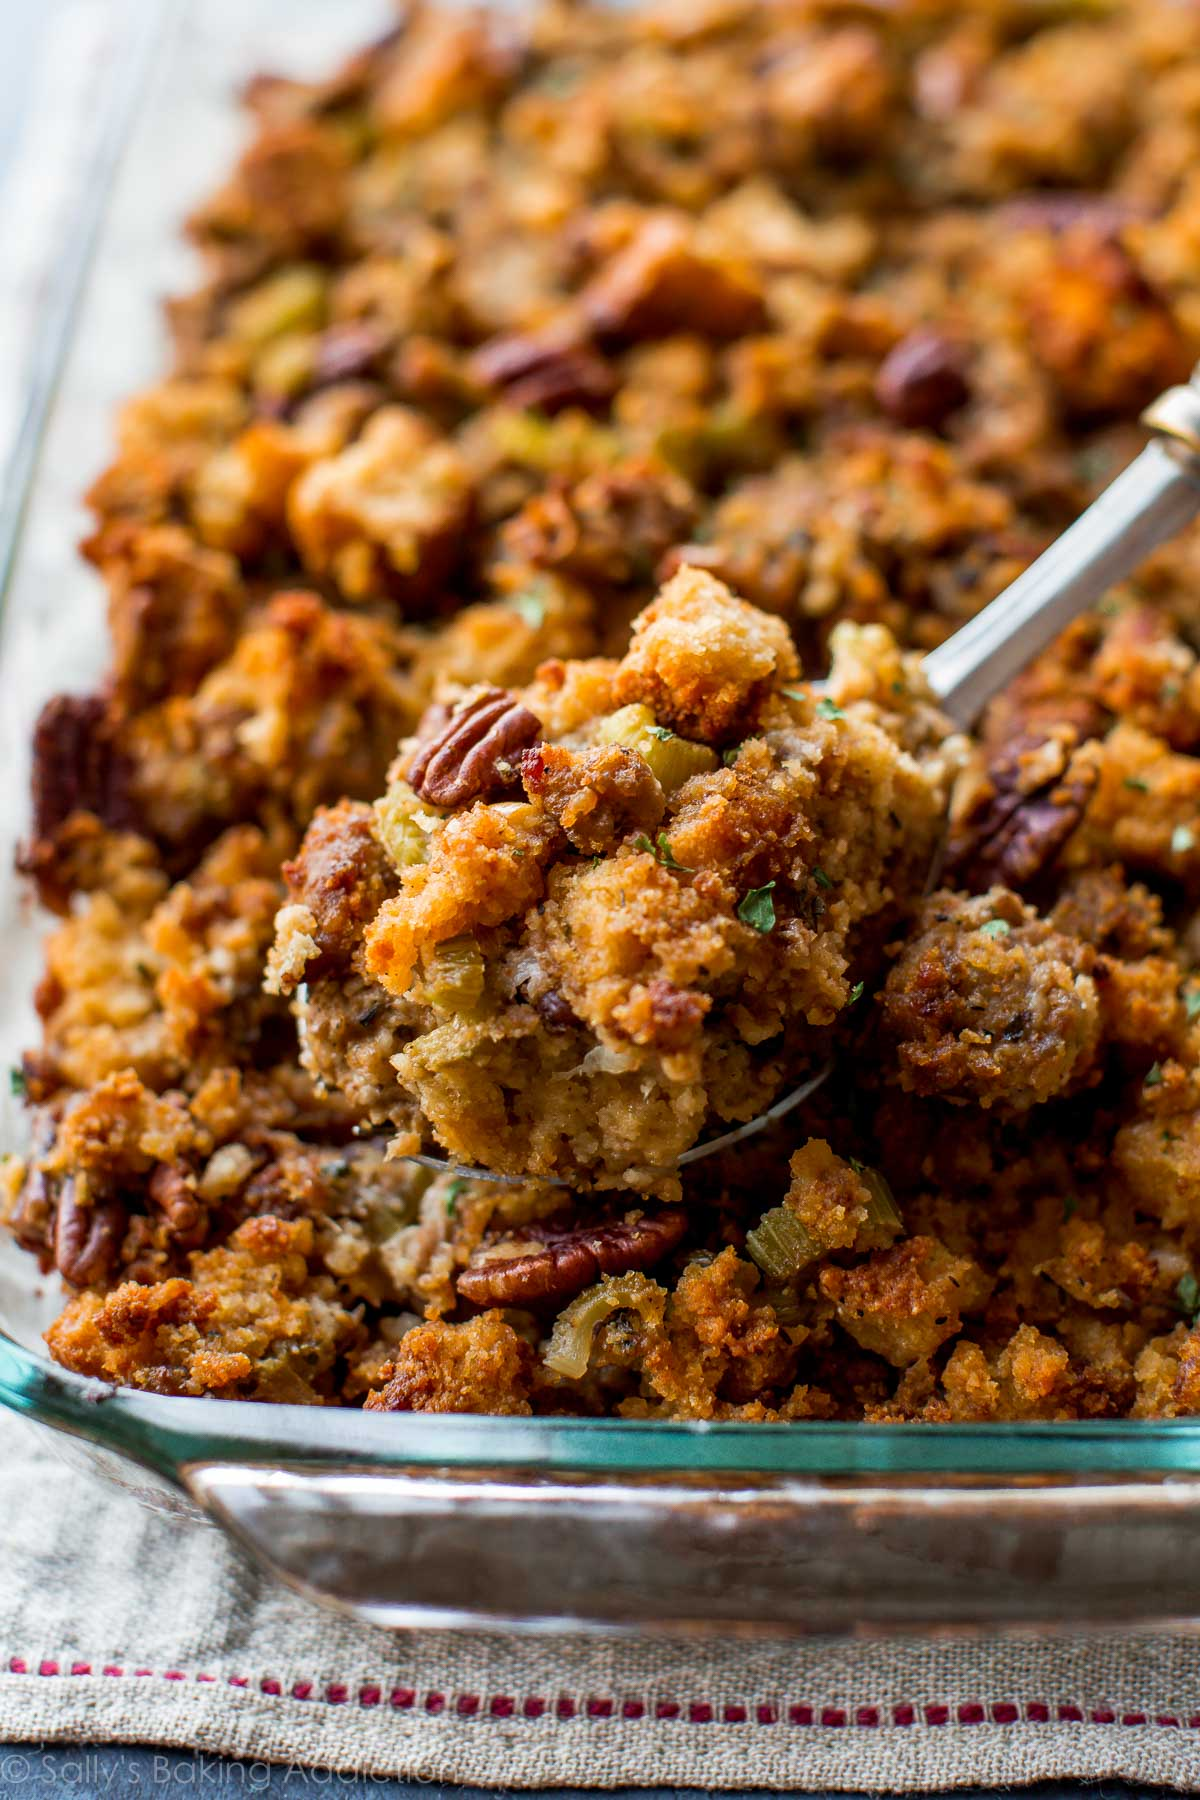 Make Ahead Cornbread Stuffing   Sallys Baking Addiction Here s how to prepare Thanksgiving side dish cornbread stuffing ahead of  time  The most flavorful